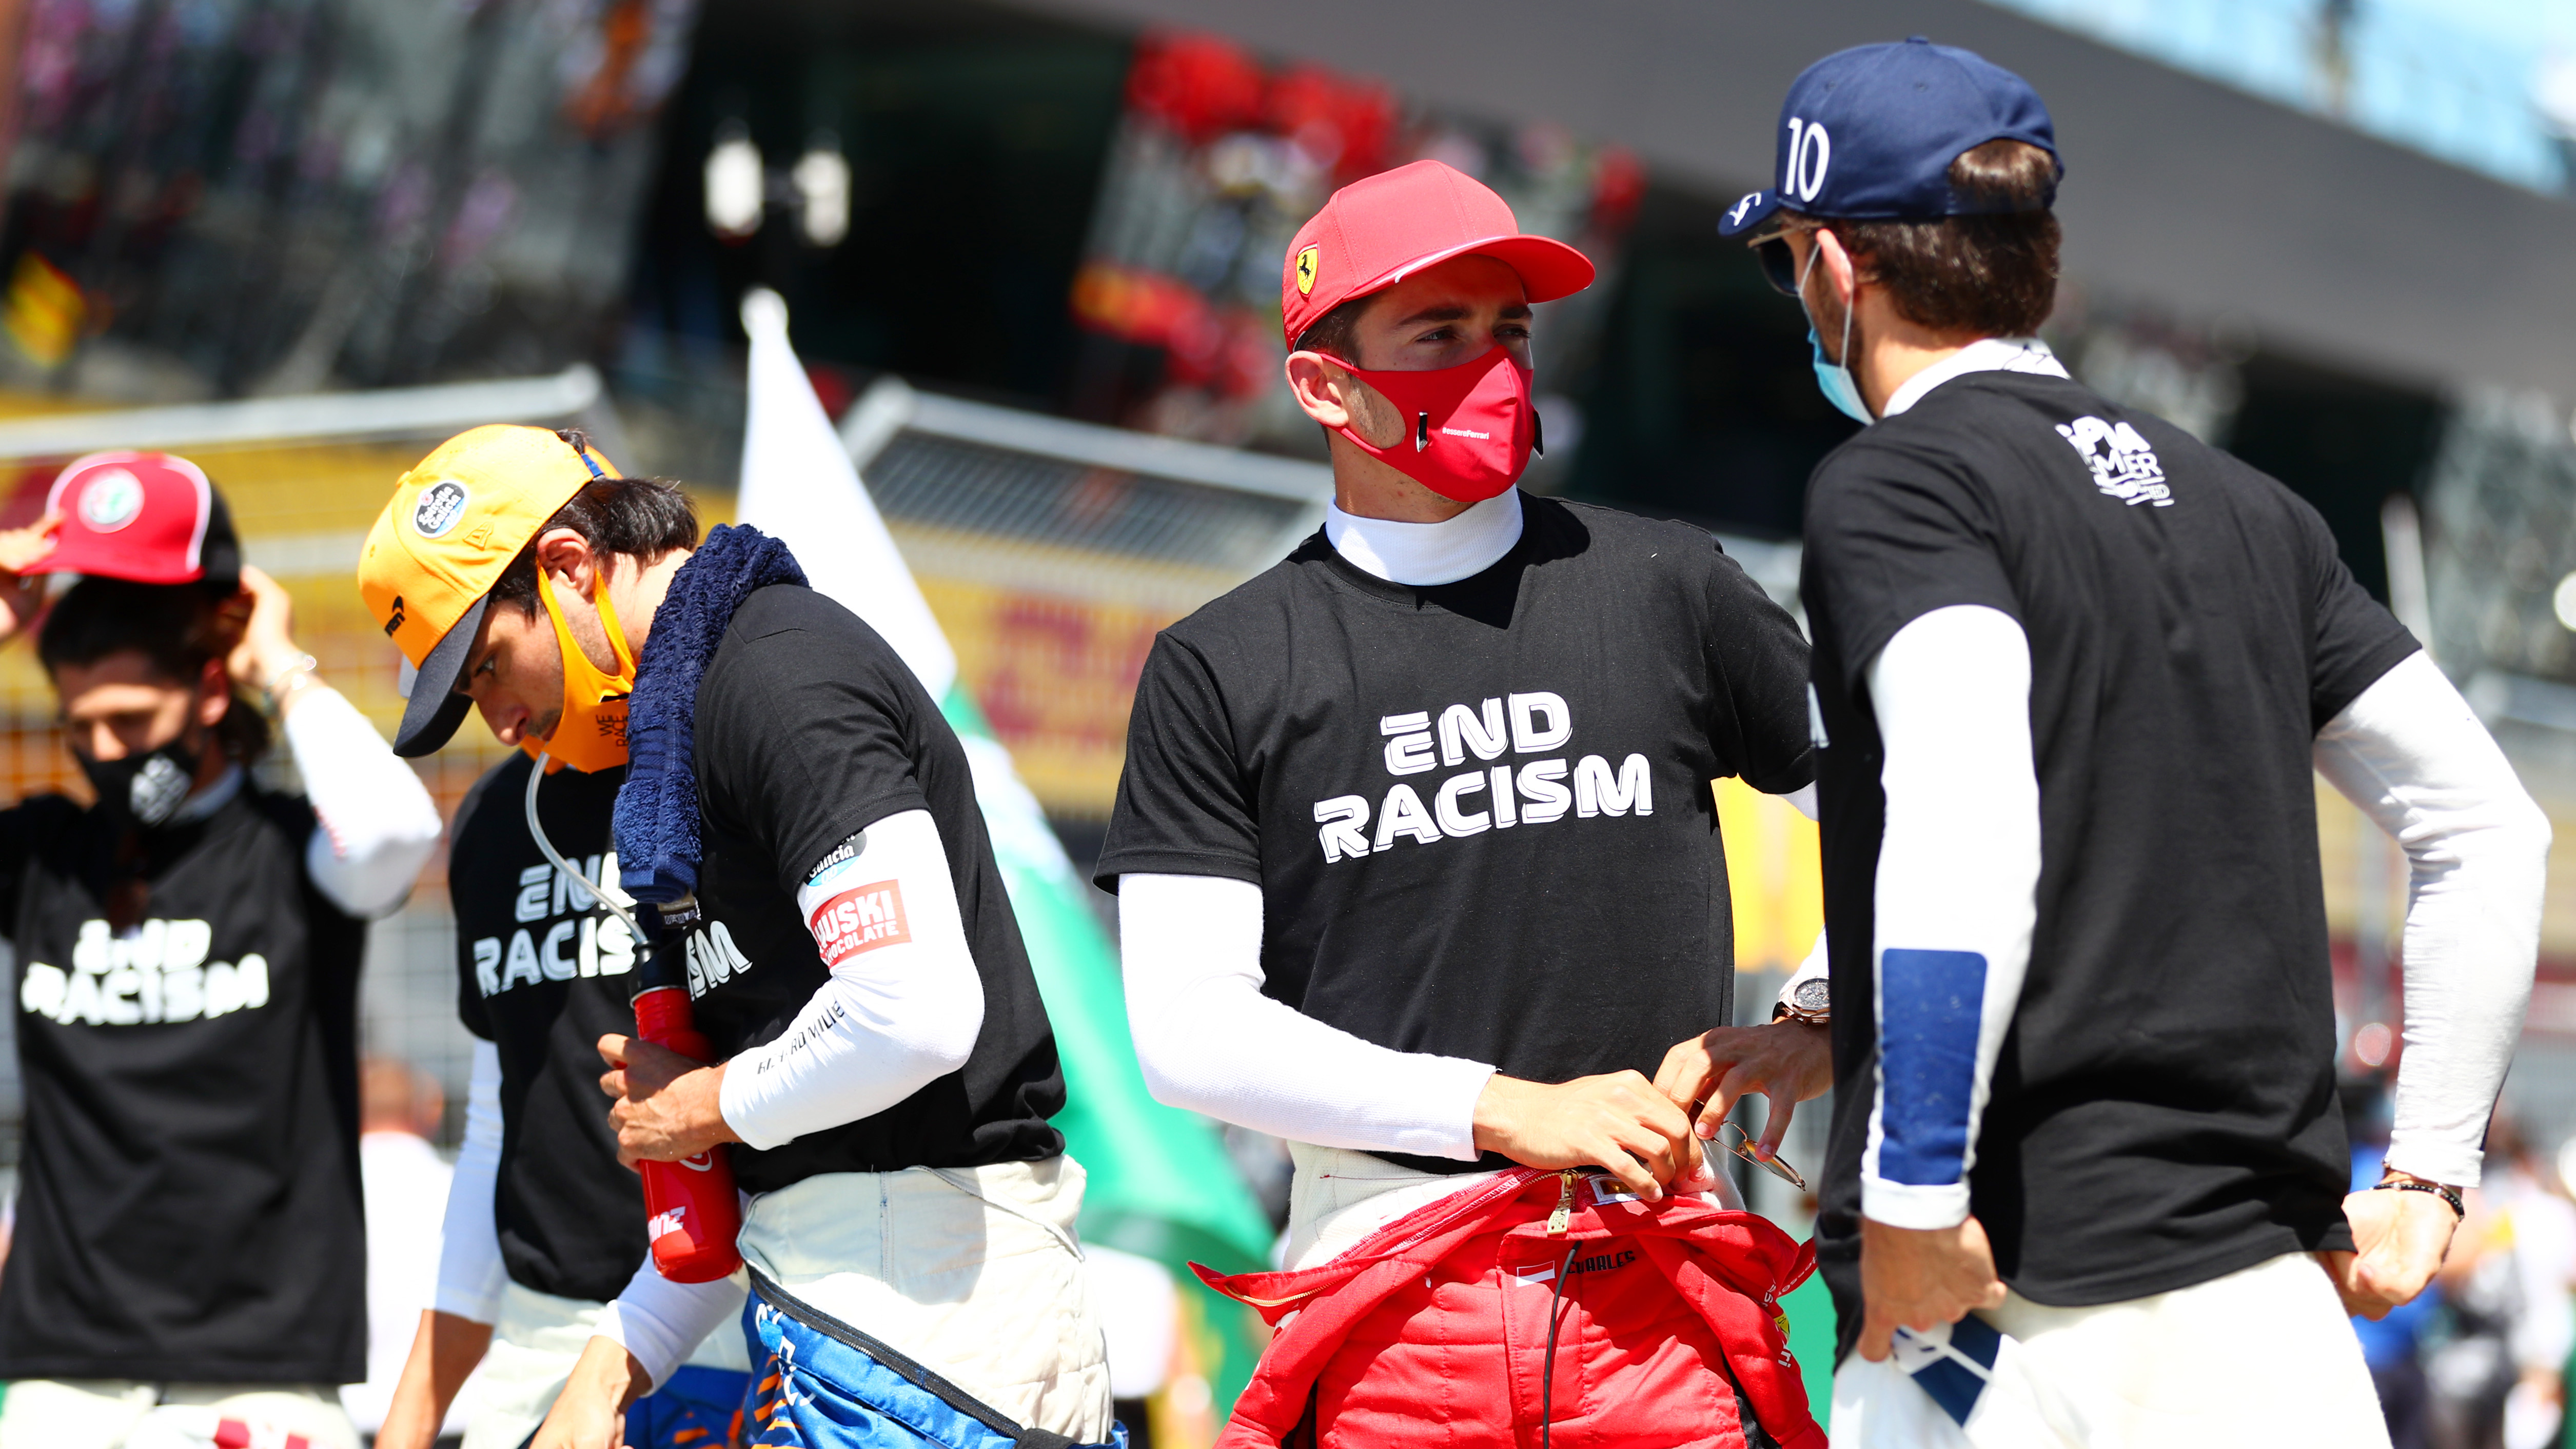 Formula One Drivers Wear 'End Racism' Shirts and Take a Knee Before Season Opener